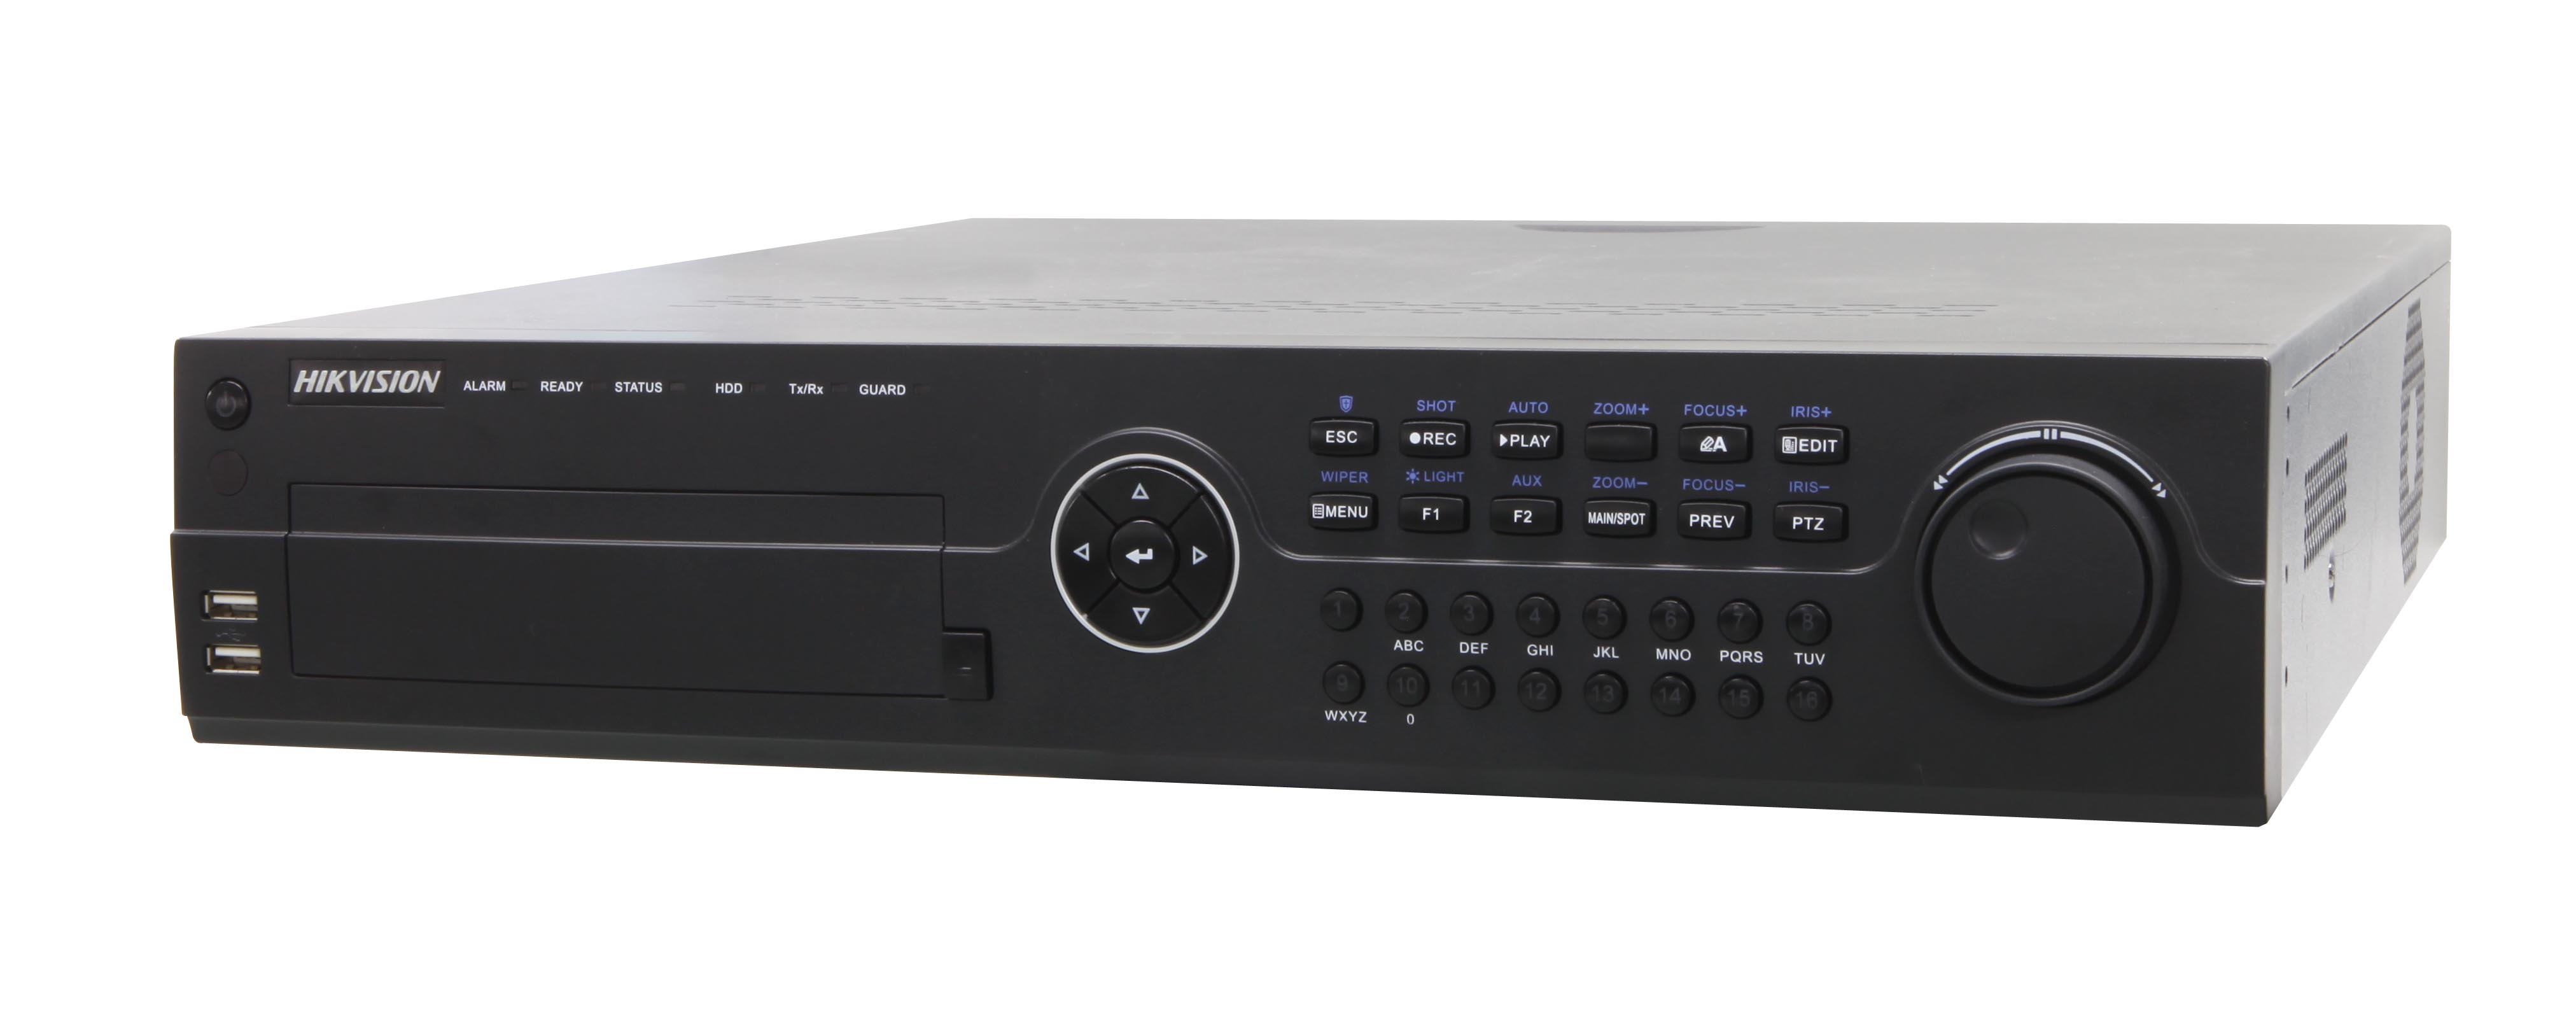 Hikvision introduce 6-ch Full HD-SDI DVR Series